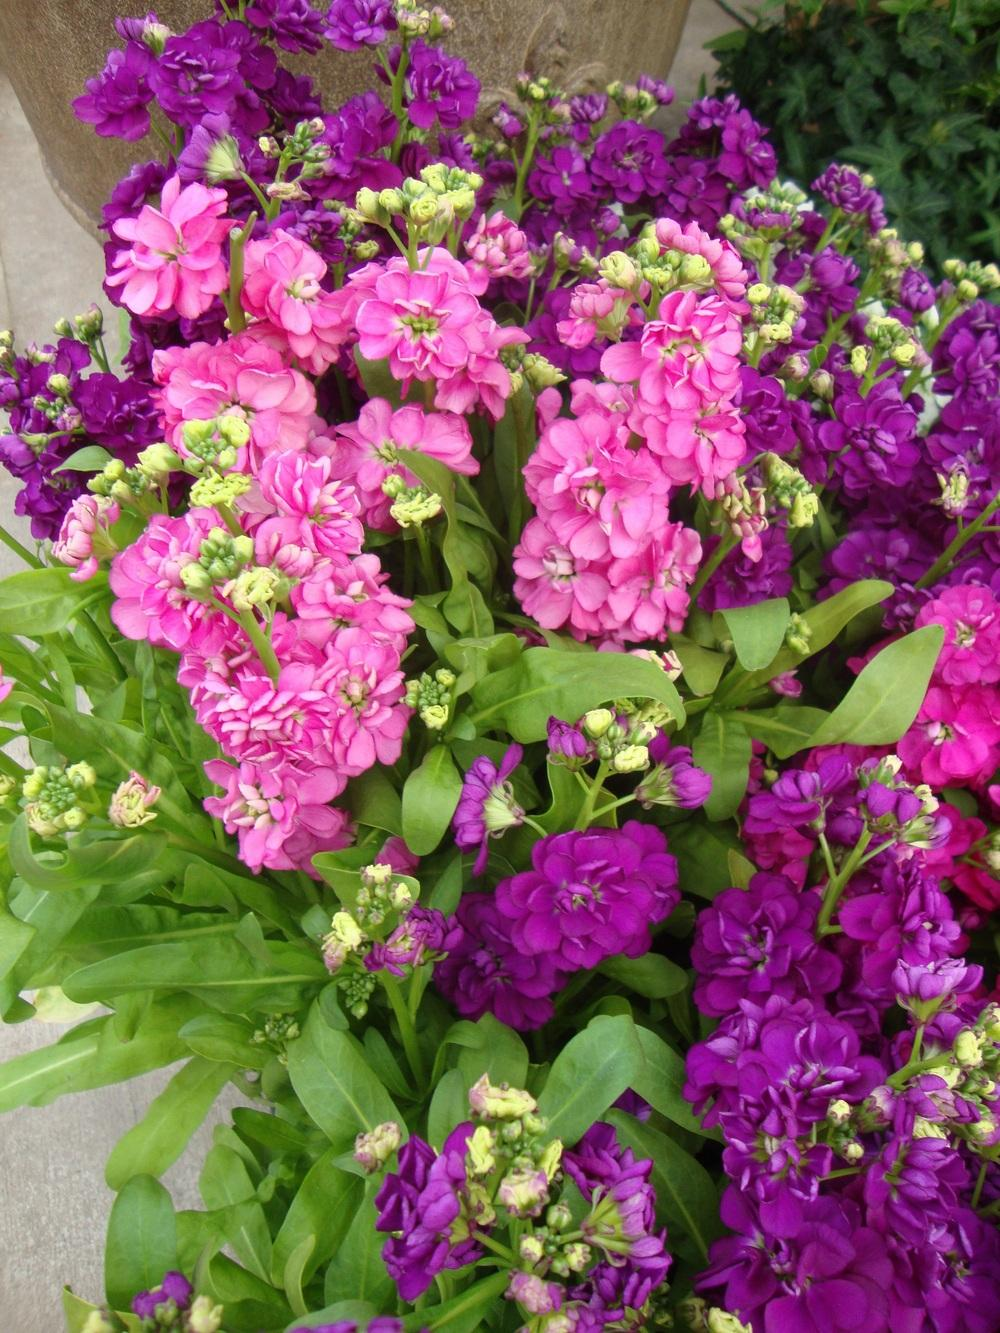 Photo of Stock (Matthiola incana 'Hot Cakes') uploaded by Paul2032